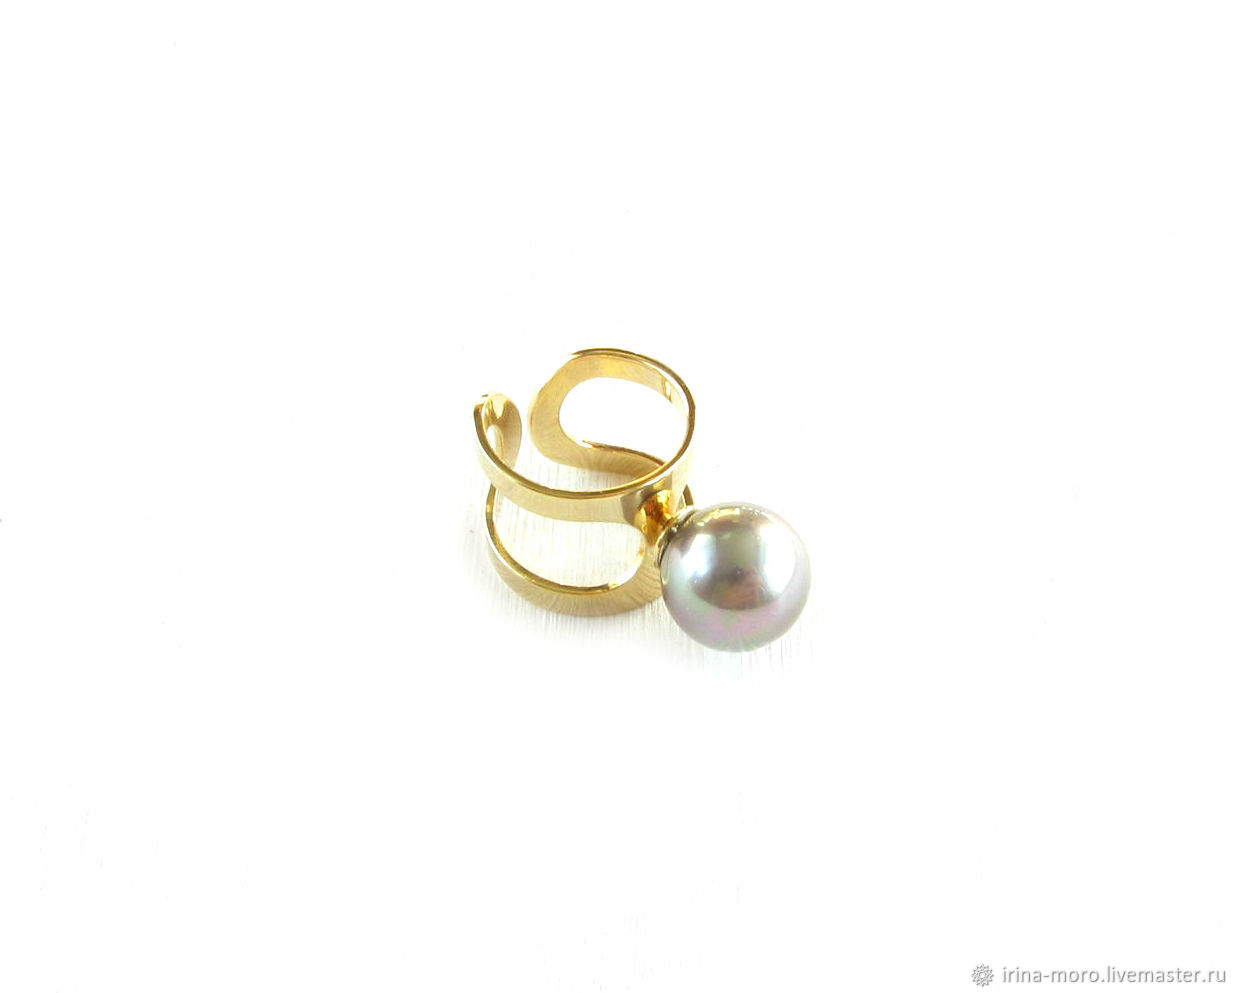 Ring 'Charm'wide ring with pearls,gold ring, Rings, Moscow,  Фото №1